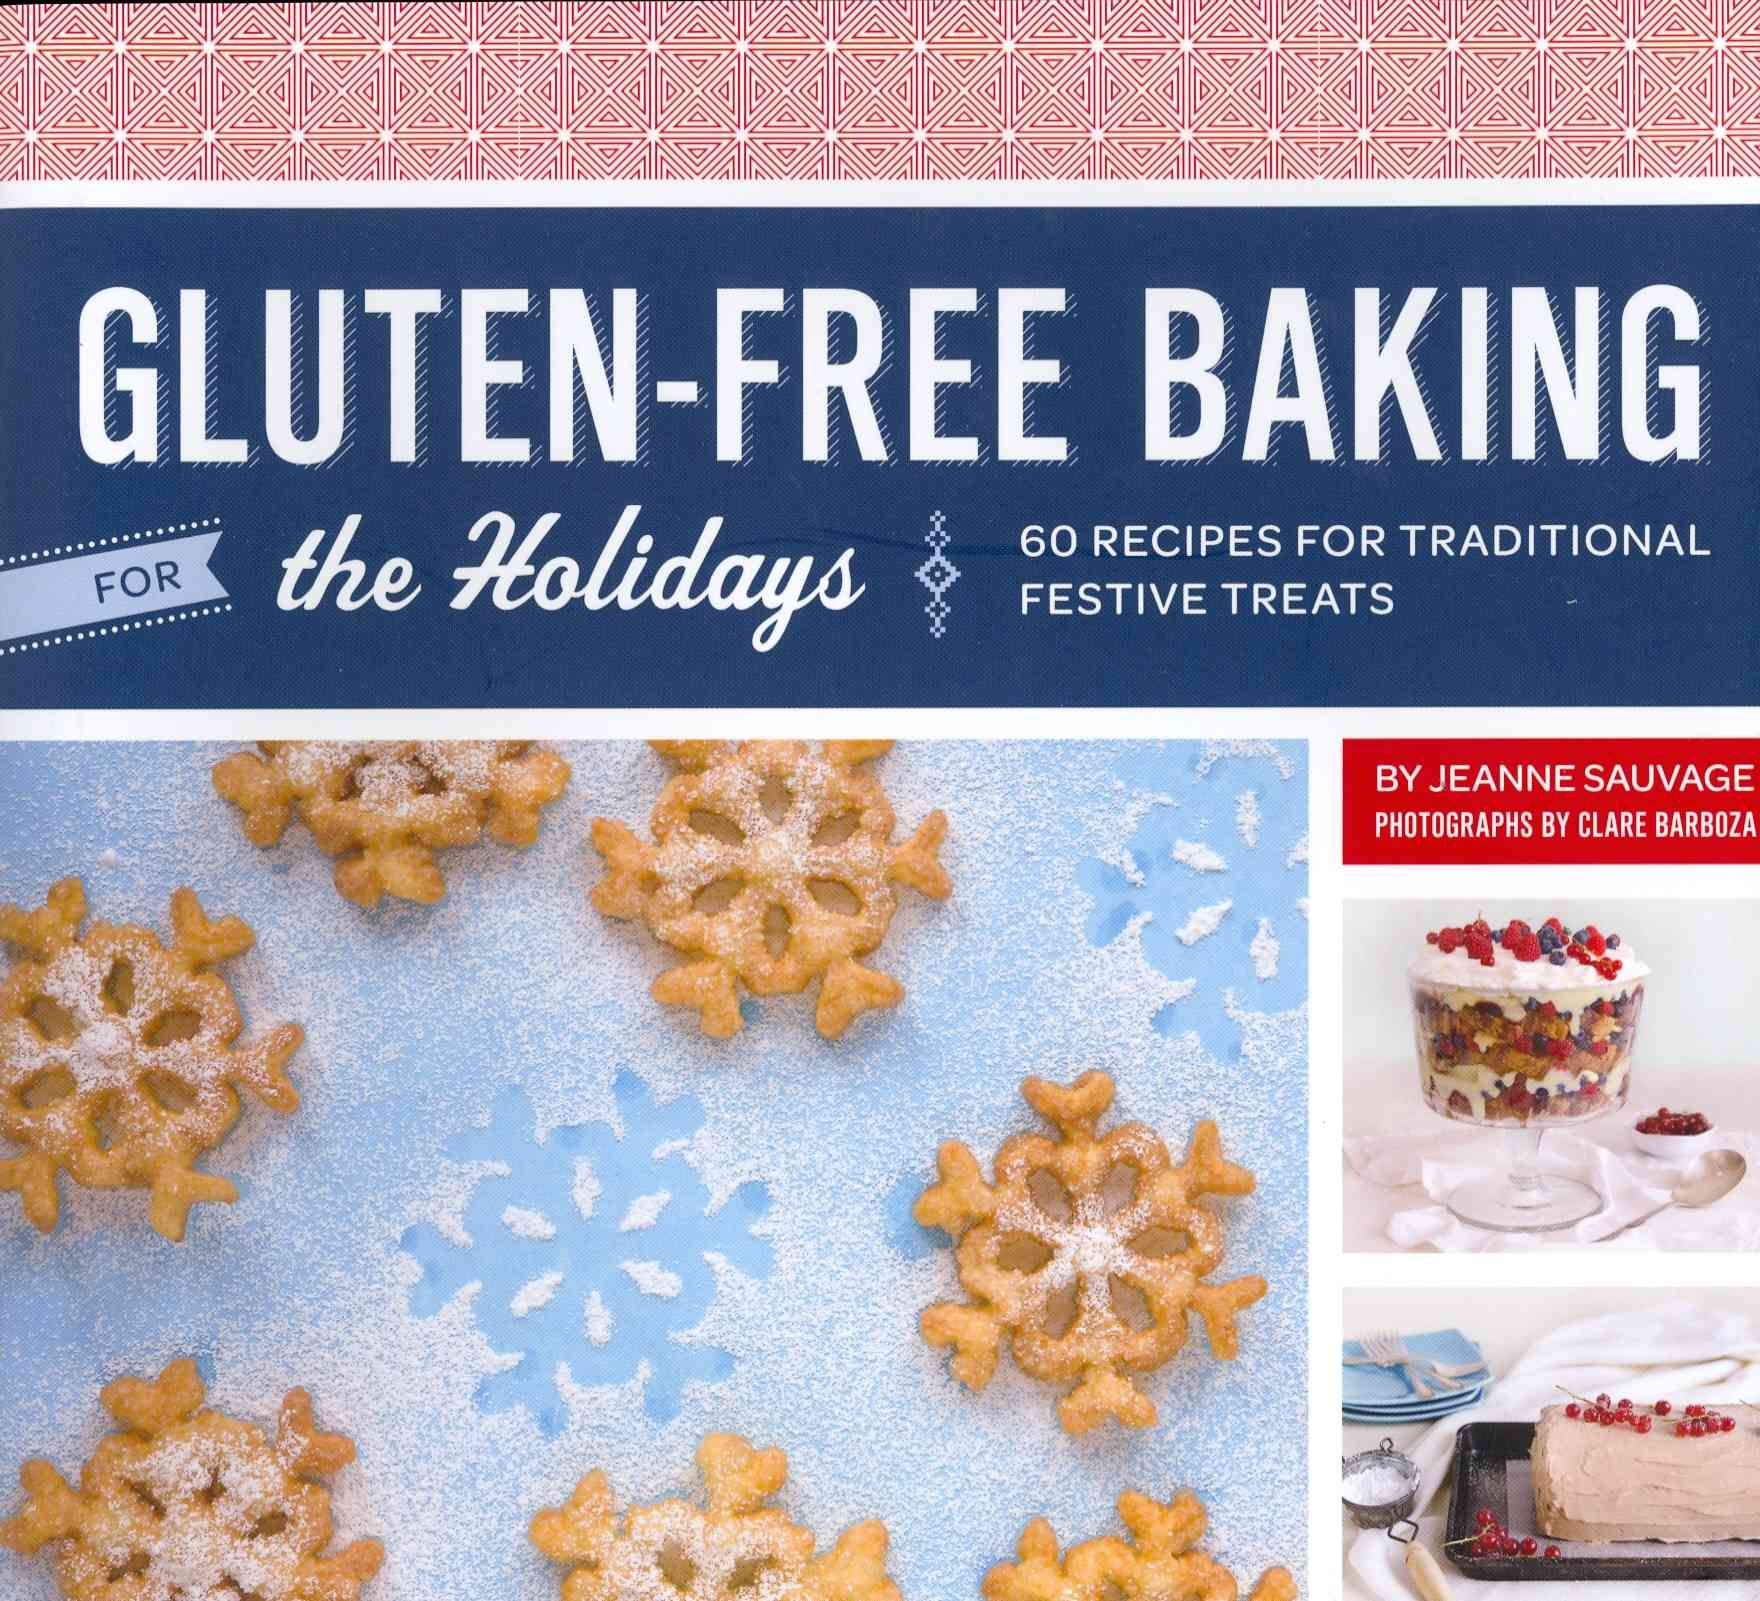 Gluten-Free Baking for the Holidays: 60 Recipes for Traditional Festive Treats (Hardcover)